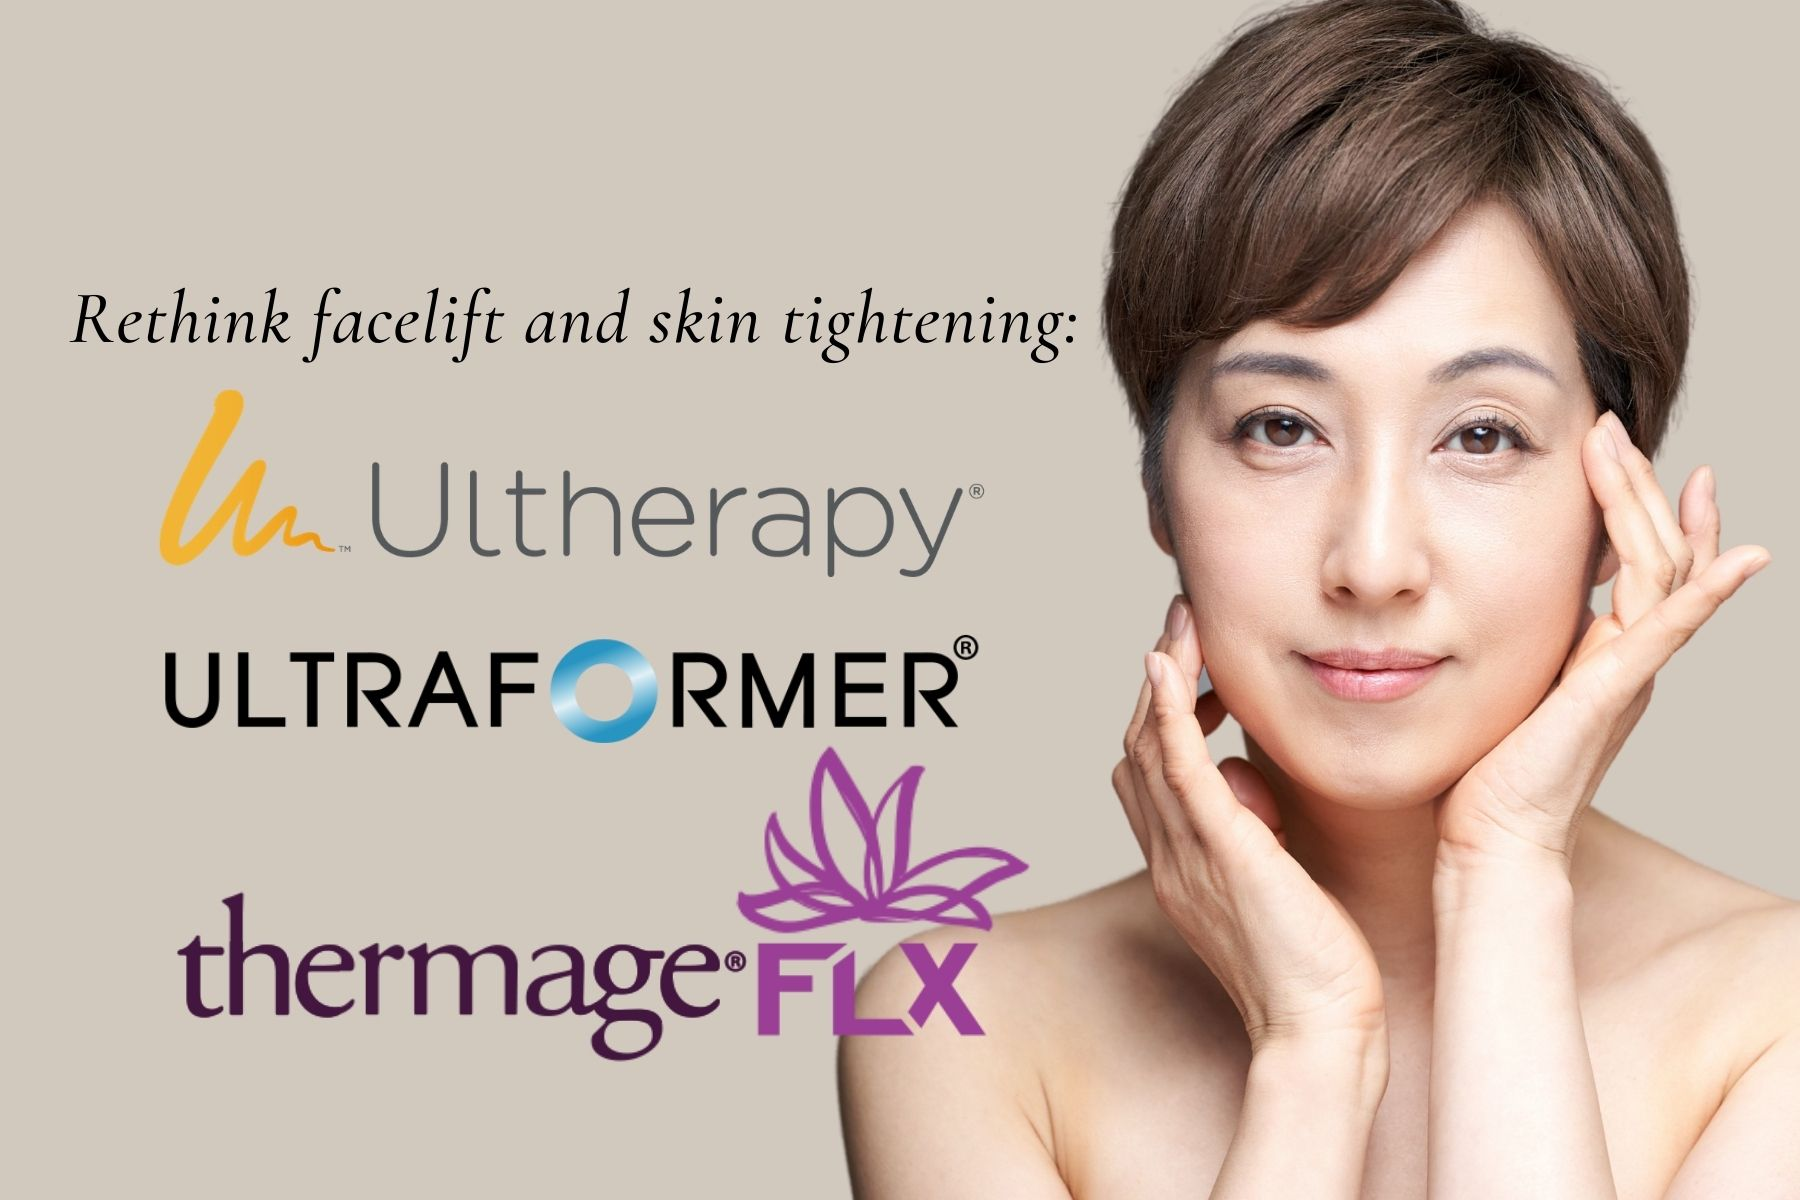 Rethink facelift and skin tightening: Ultraformer 3, Ultherapy and Thermage FLX.